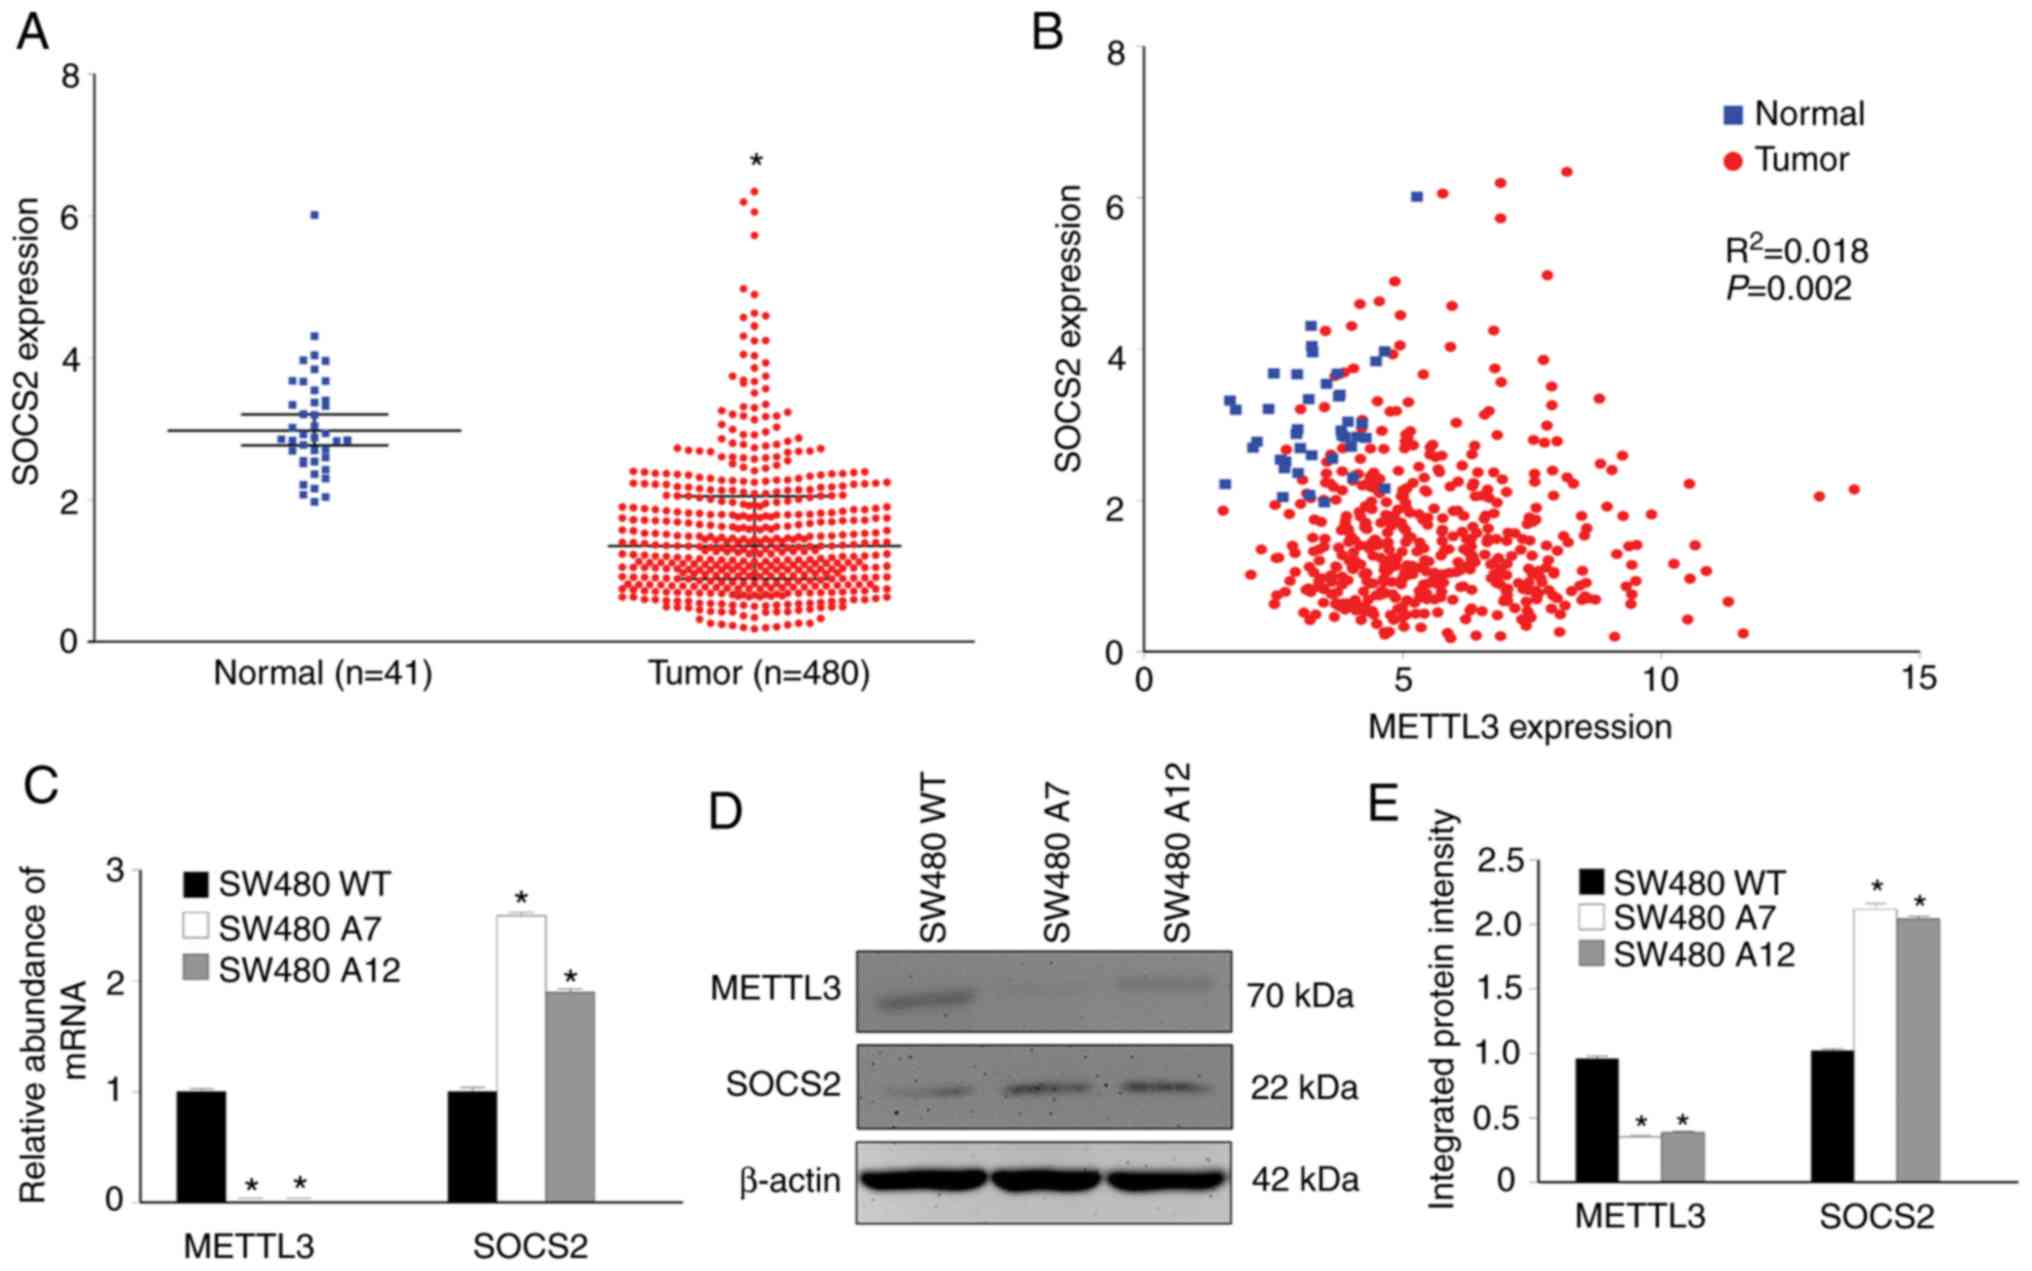 M6a Methyltransferase Mettl3 Maintains Colon Cancer Tumorigenicity By Suppressing Socs2 To Promote Cell Proliferation